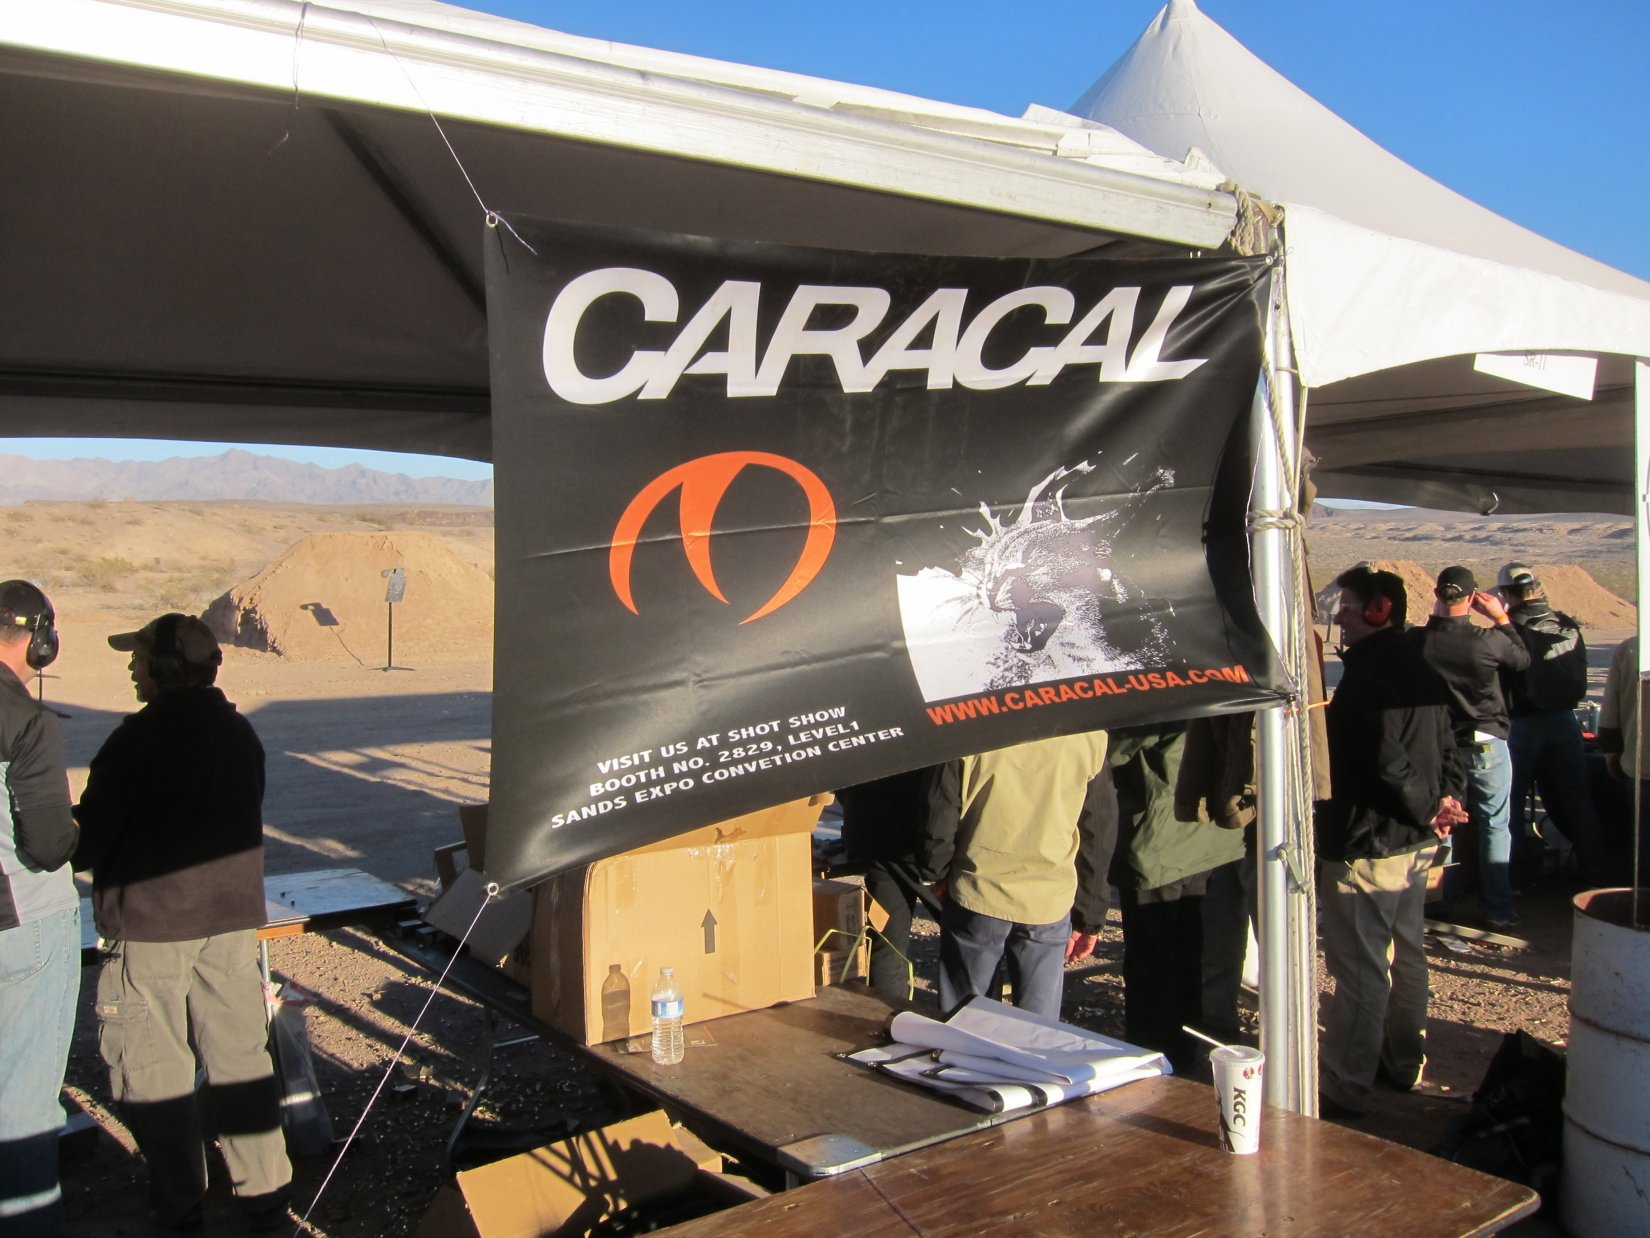 Caracal F and Caracal C Low Bore Axis Striker Fired Polymer Framed Semi Auto 9mm Compact Combat Pistols Tactical Pistols SHOT Show 2012 Media Day DefenseReview.com DR 4 Caracal F and Caracal C Low Bore Axis, Striker Fired Polymer Frame 9mm Combat Pistols for Concealed Carry (CCW) and Covert Missions: Tactical Pistol Tack Drivers at the Range!